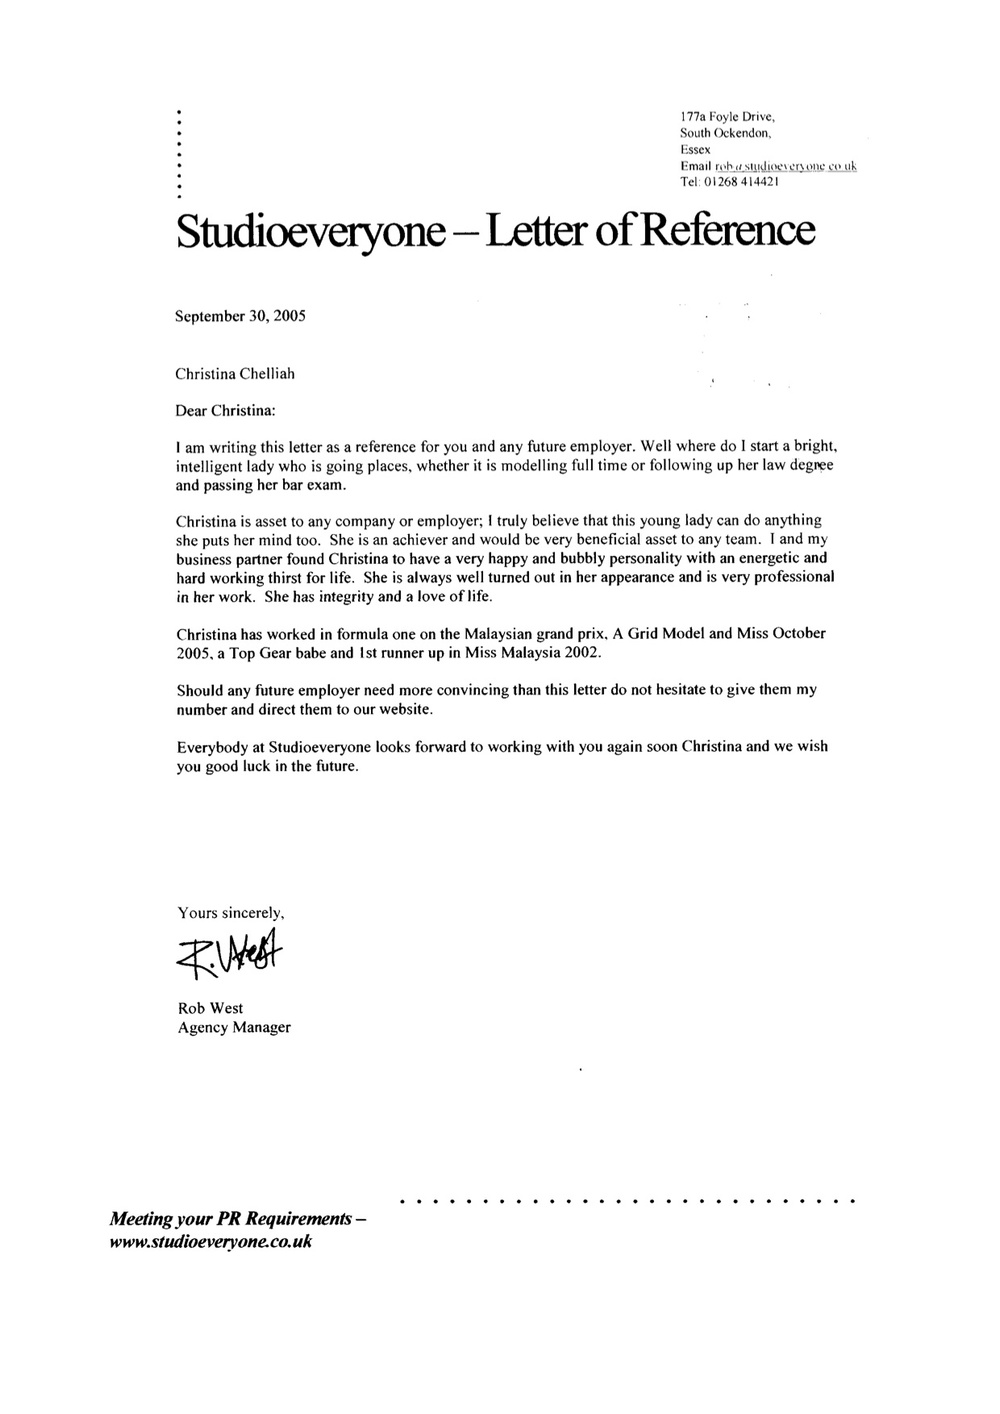 2005 - Modeling - Studio Everyone Agency - Reference Letter.jpg